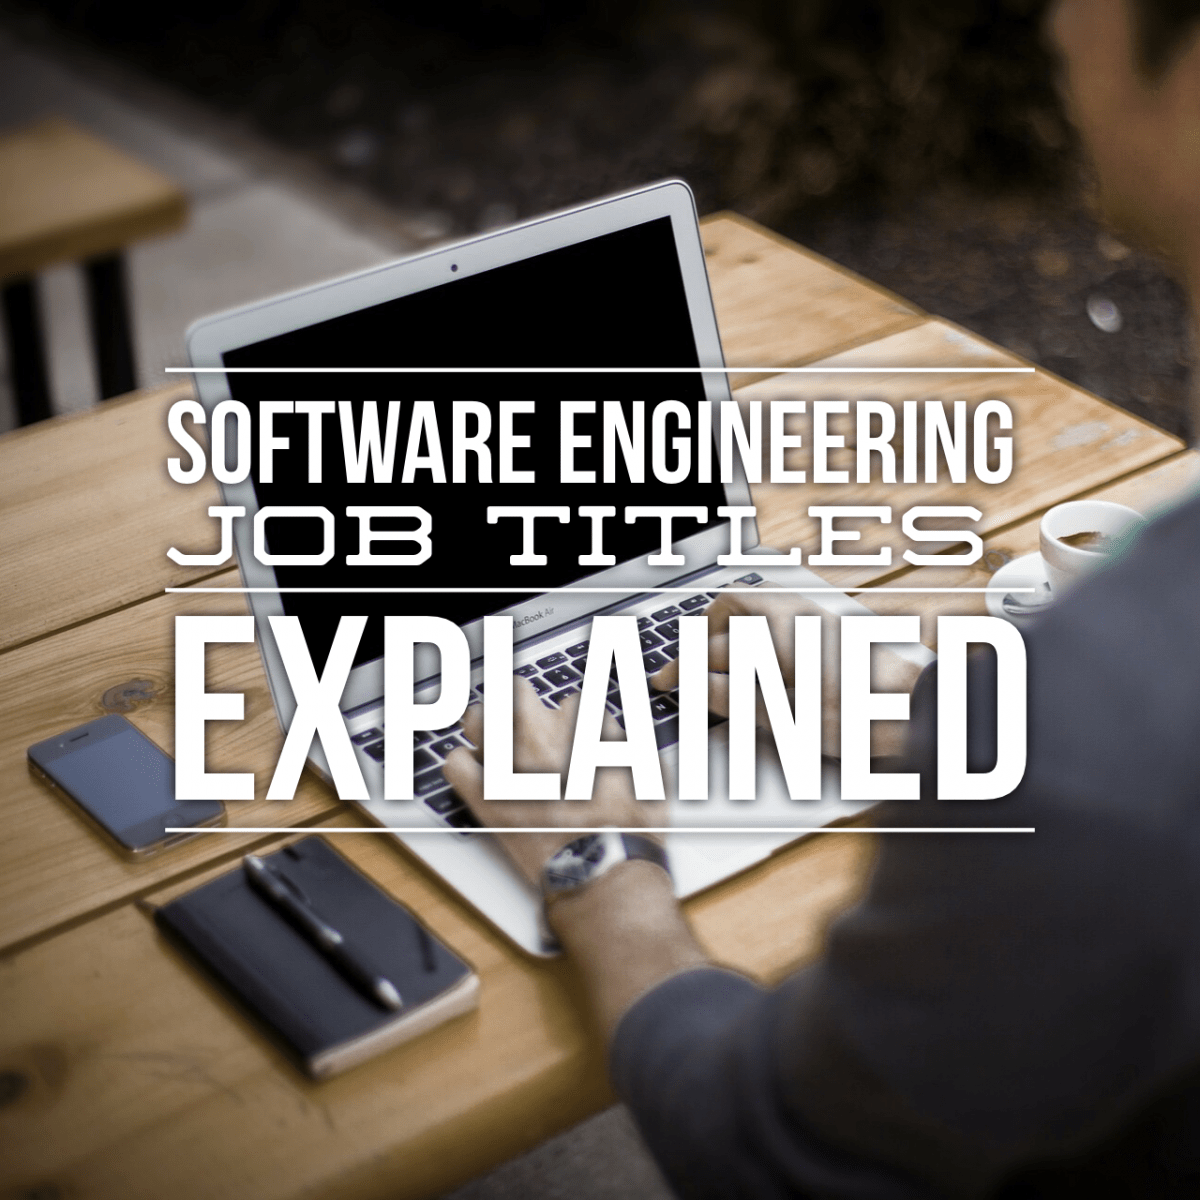 Software Engineering Job Titles Explained